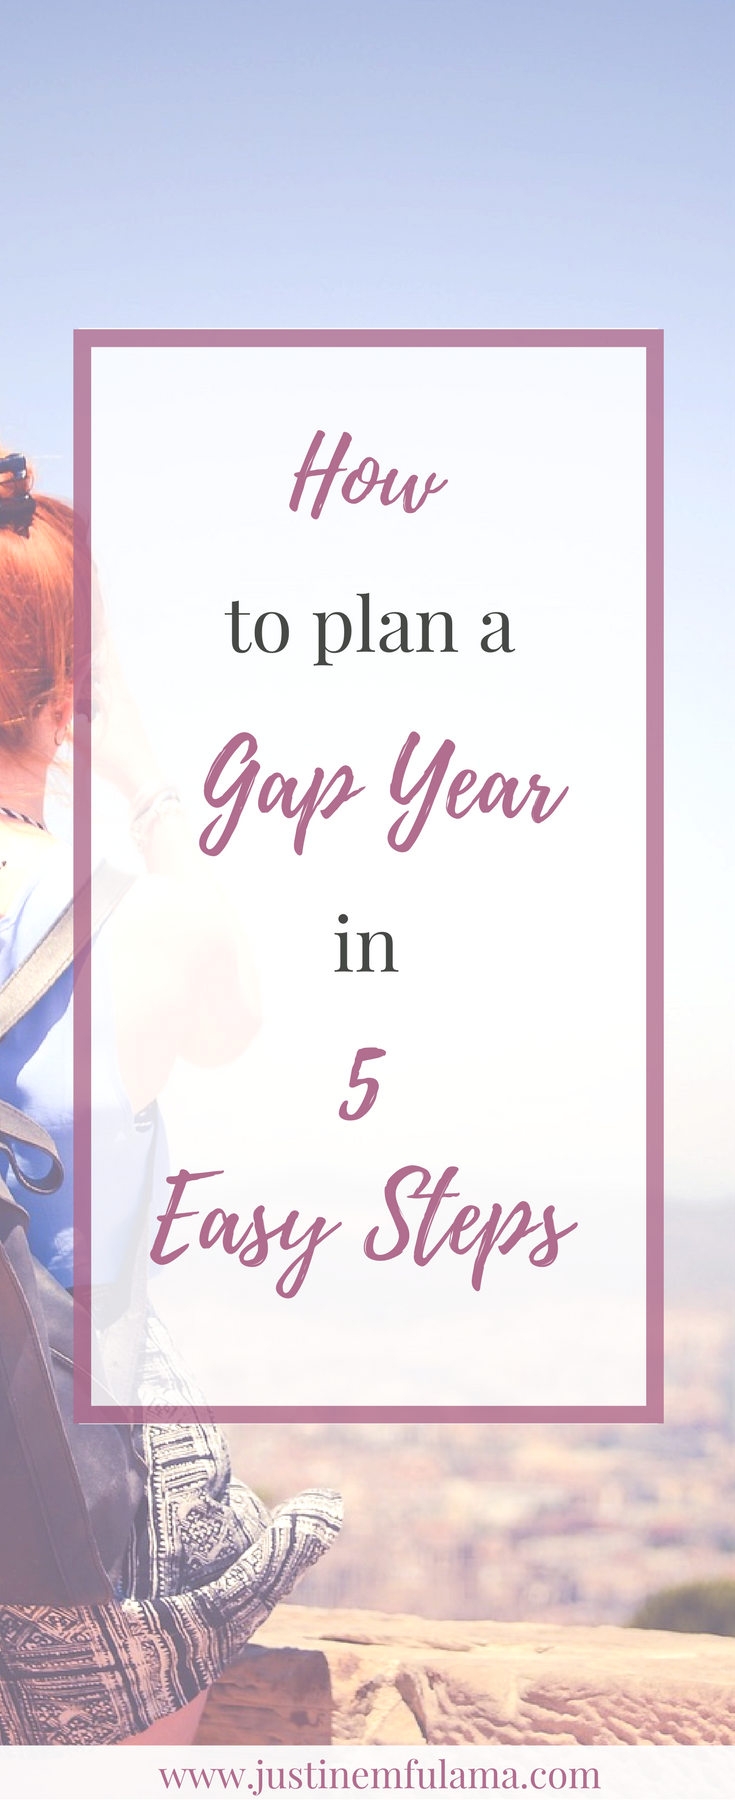 How to plan a Gap Year in 5 easy steps